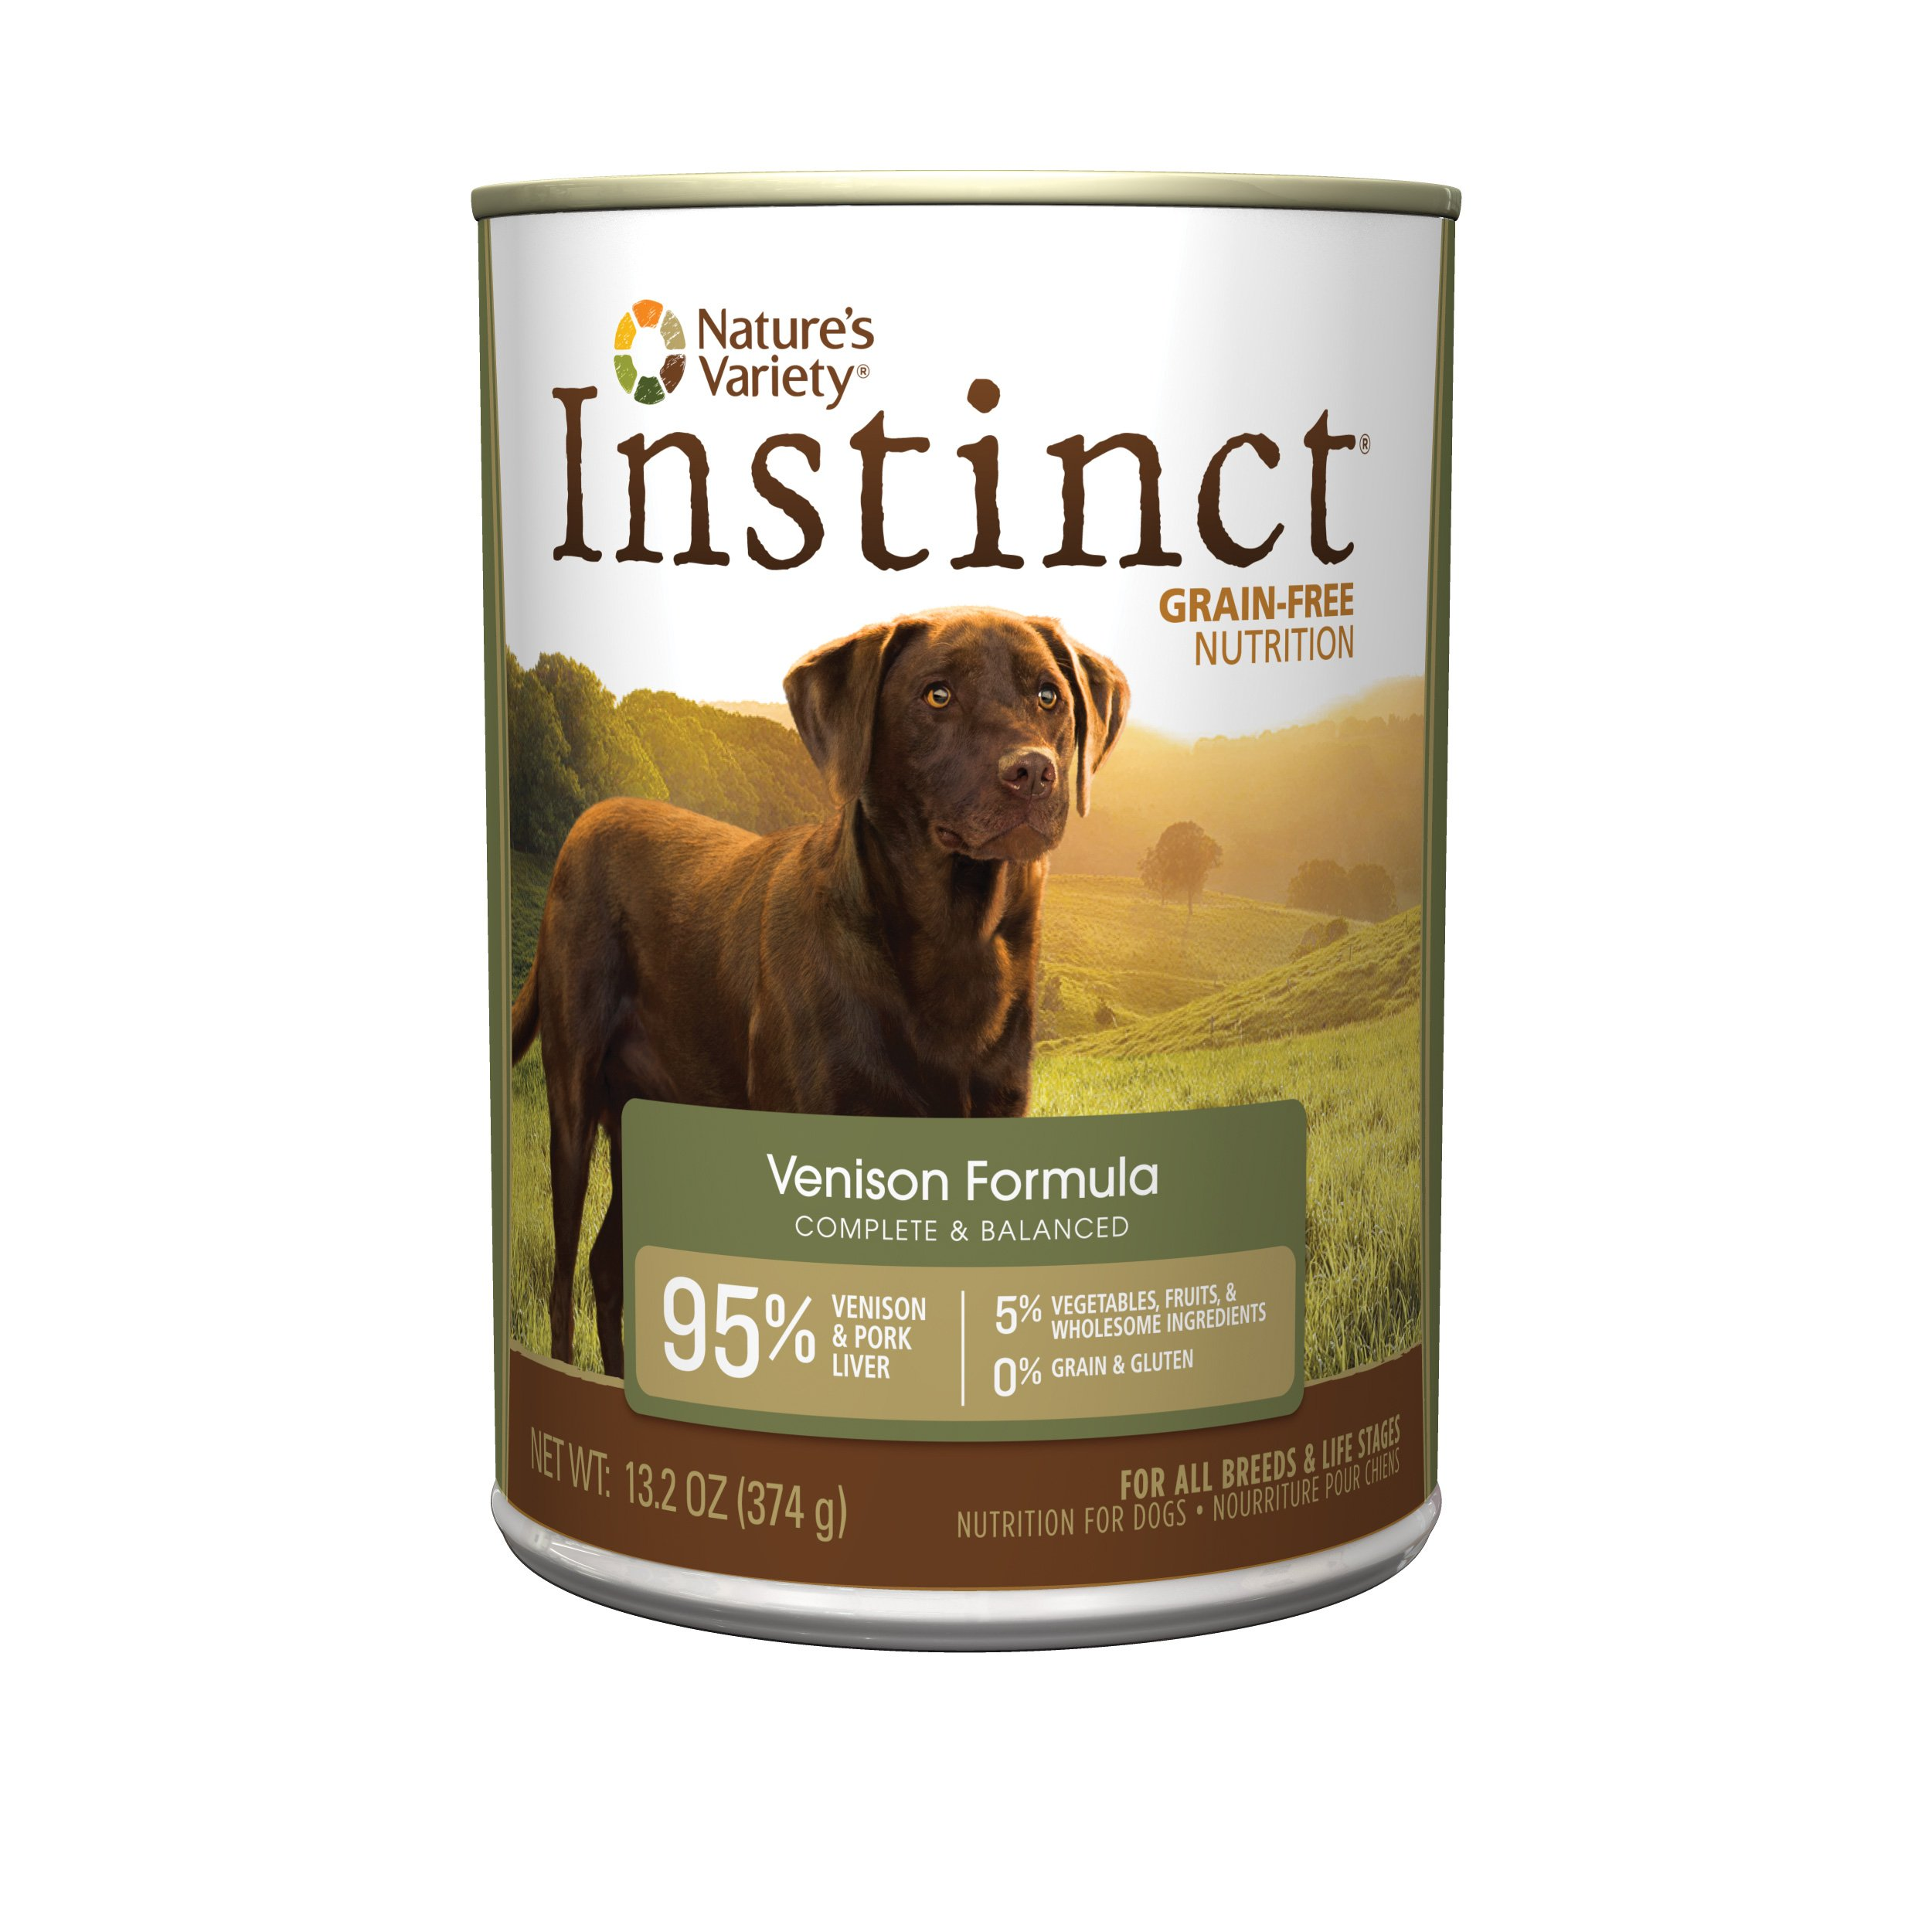 Nature'S Variety Instinct Grain Free Venison Formula Natural Wet Canned Dog Food By, 13.2 Oz. Cans (Case Of 12)